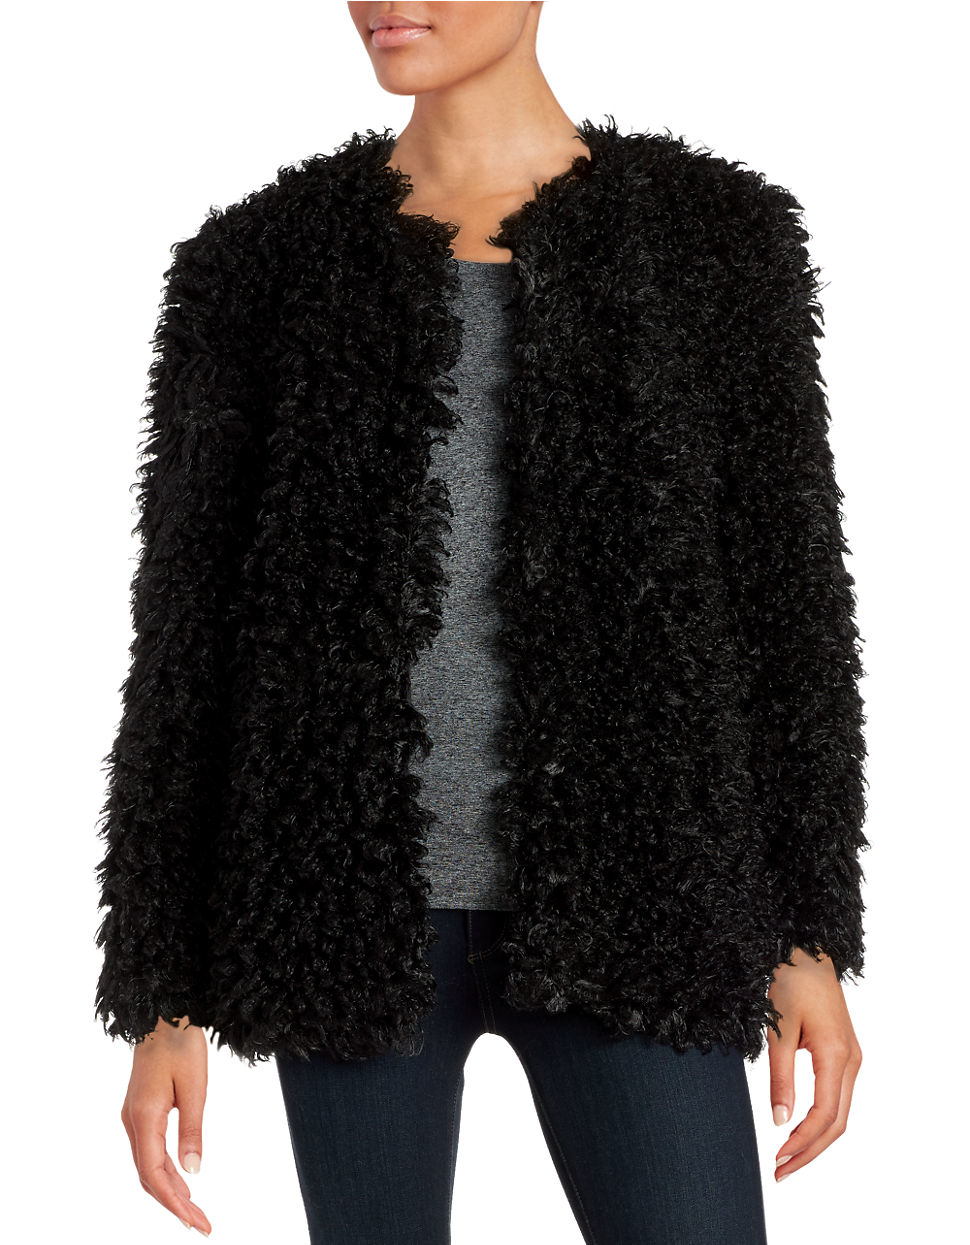 Vince camuto Curly Faux-fur Jacket in Black | Lyst